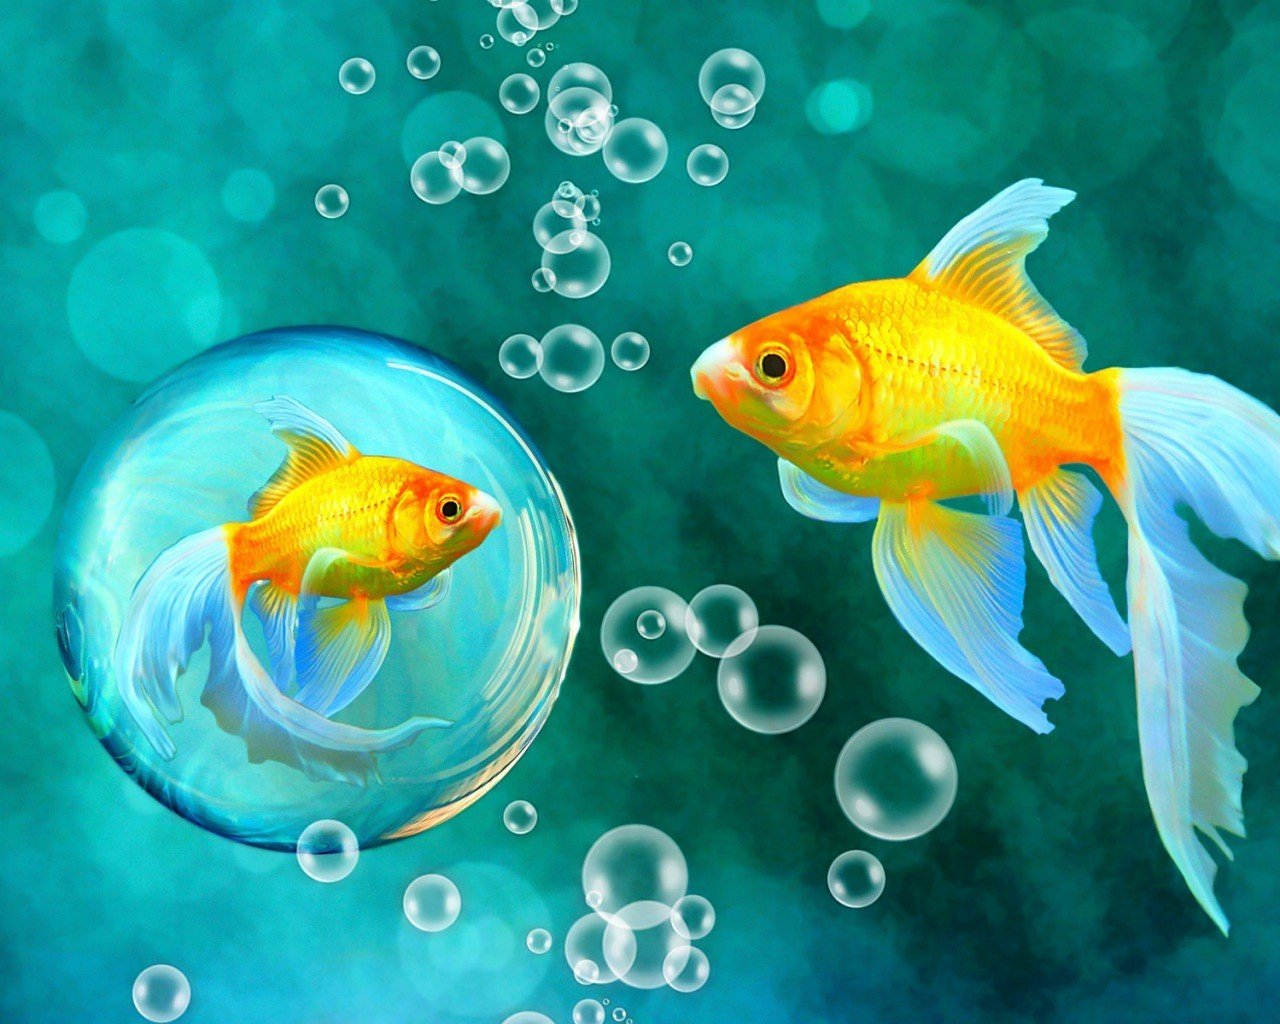 gold-bubbles-goldfish-bokeh-underwater-fishes-sea-1280x1024-wallpaper.jpg